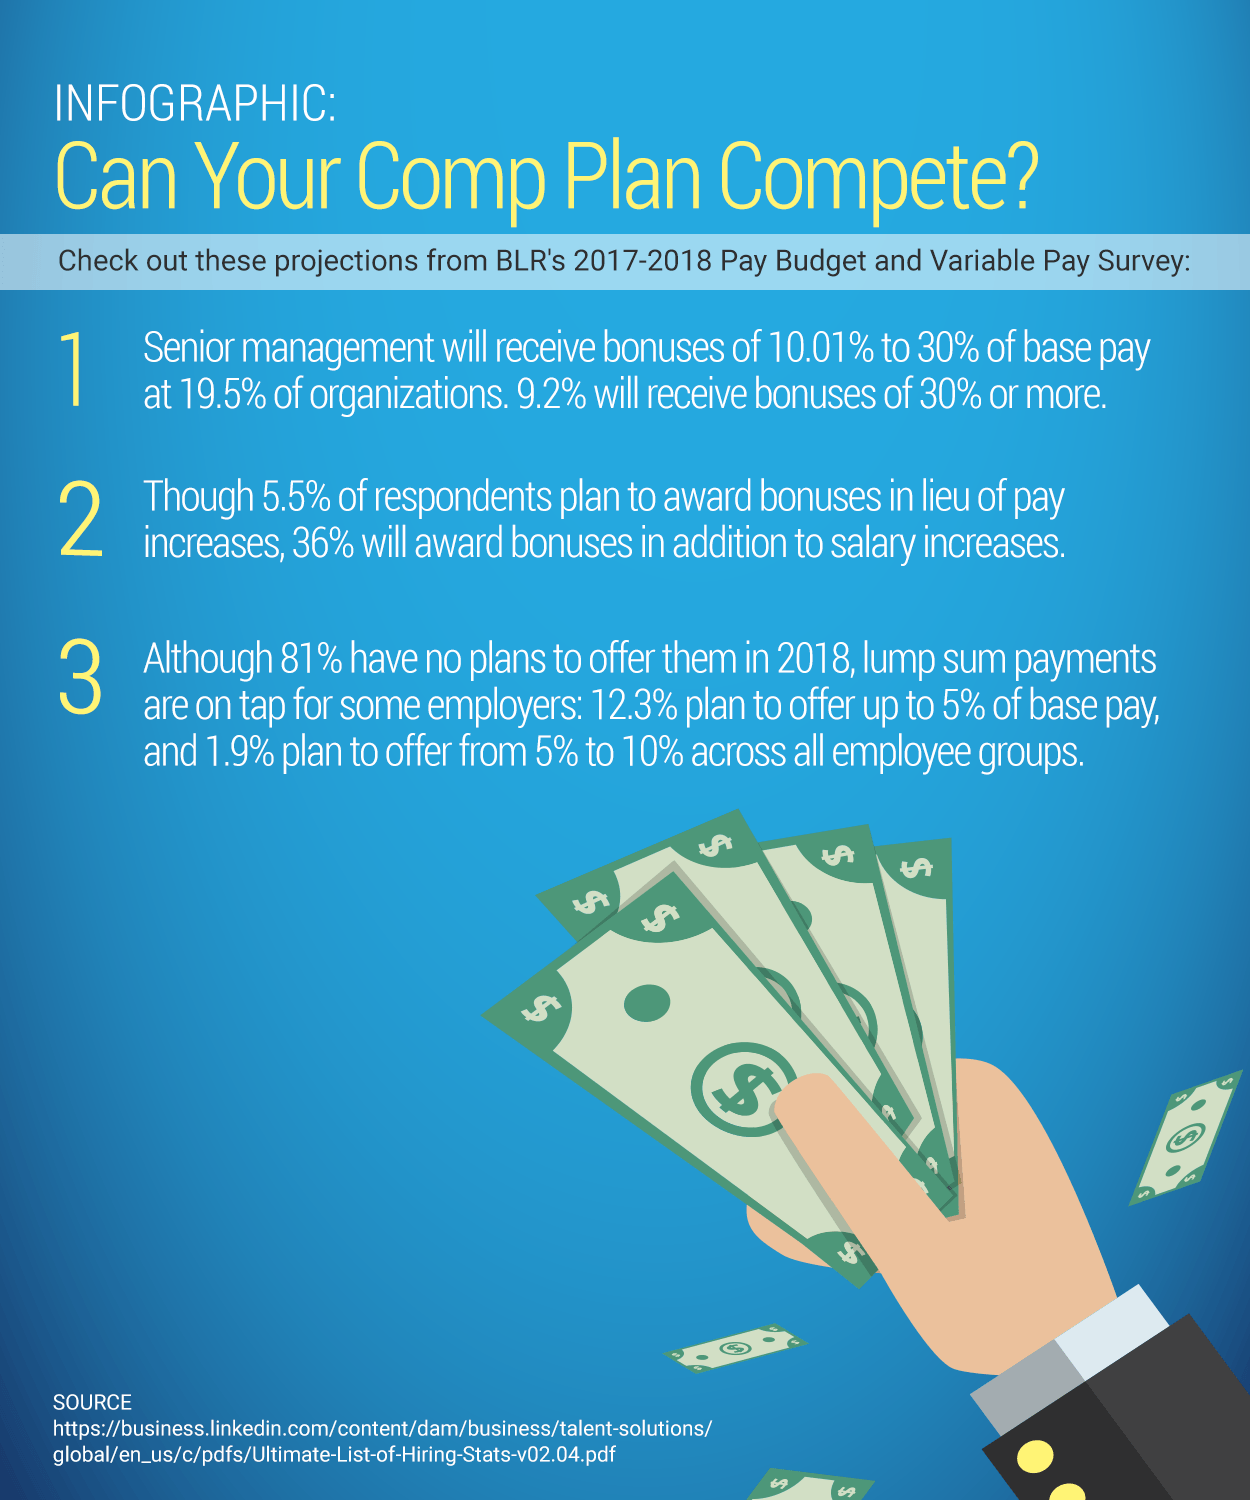 Infographic: Can Your Comp Plan Compete? Bonus Projections for 2018